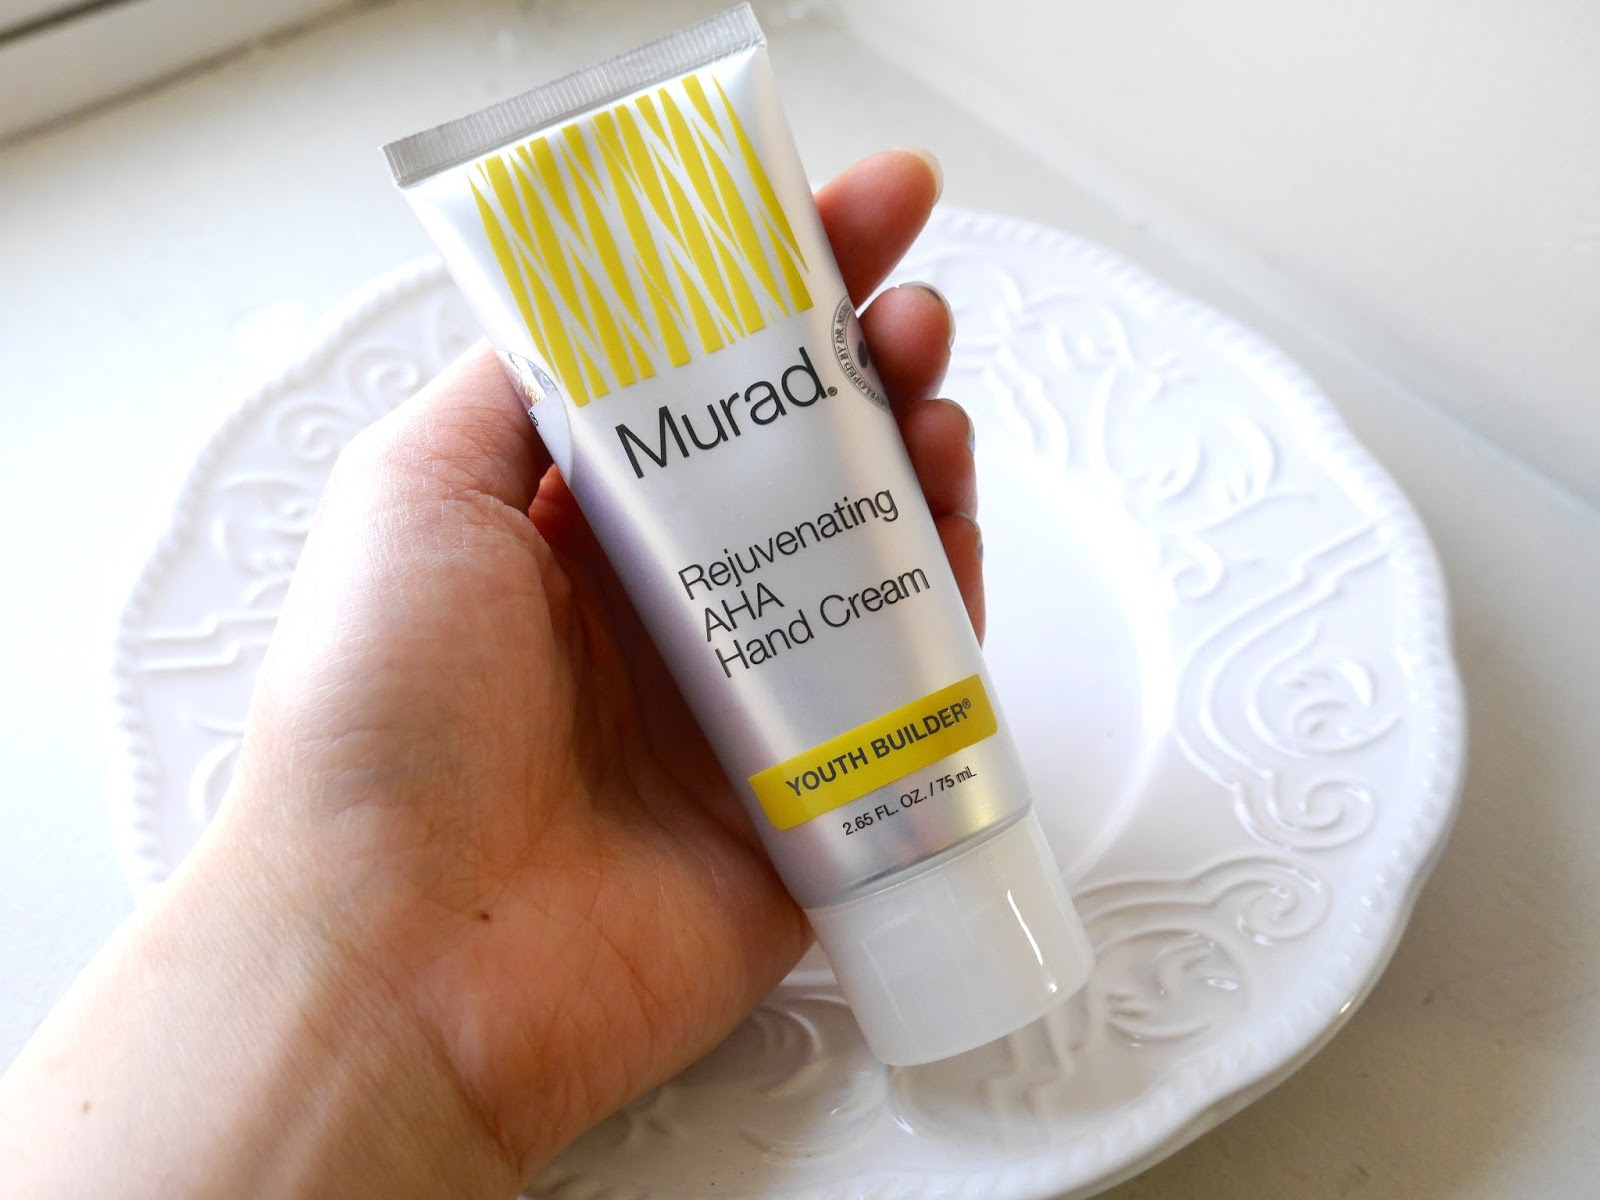 Murad Youth Builder rejuvenating aha hand cream review